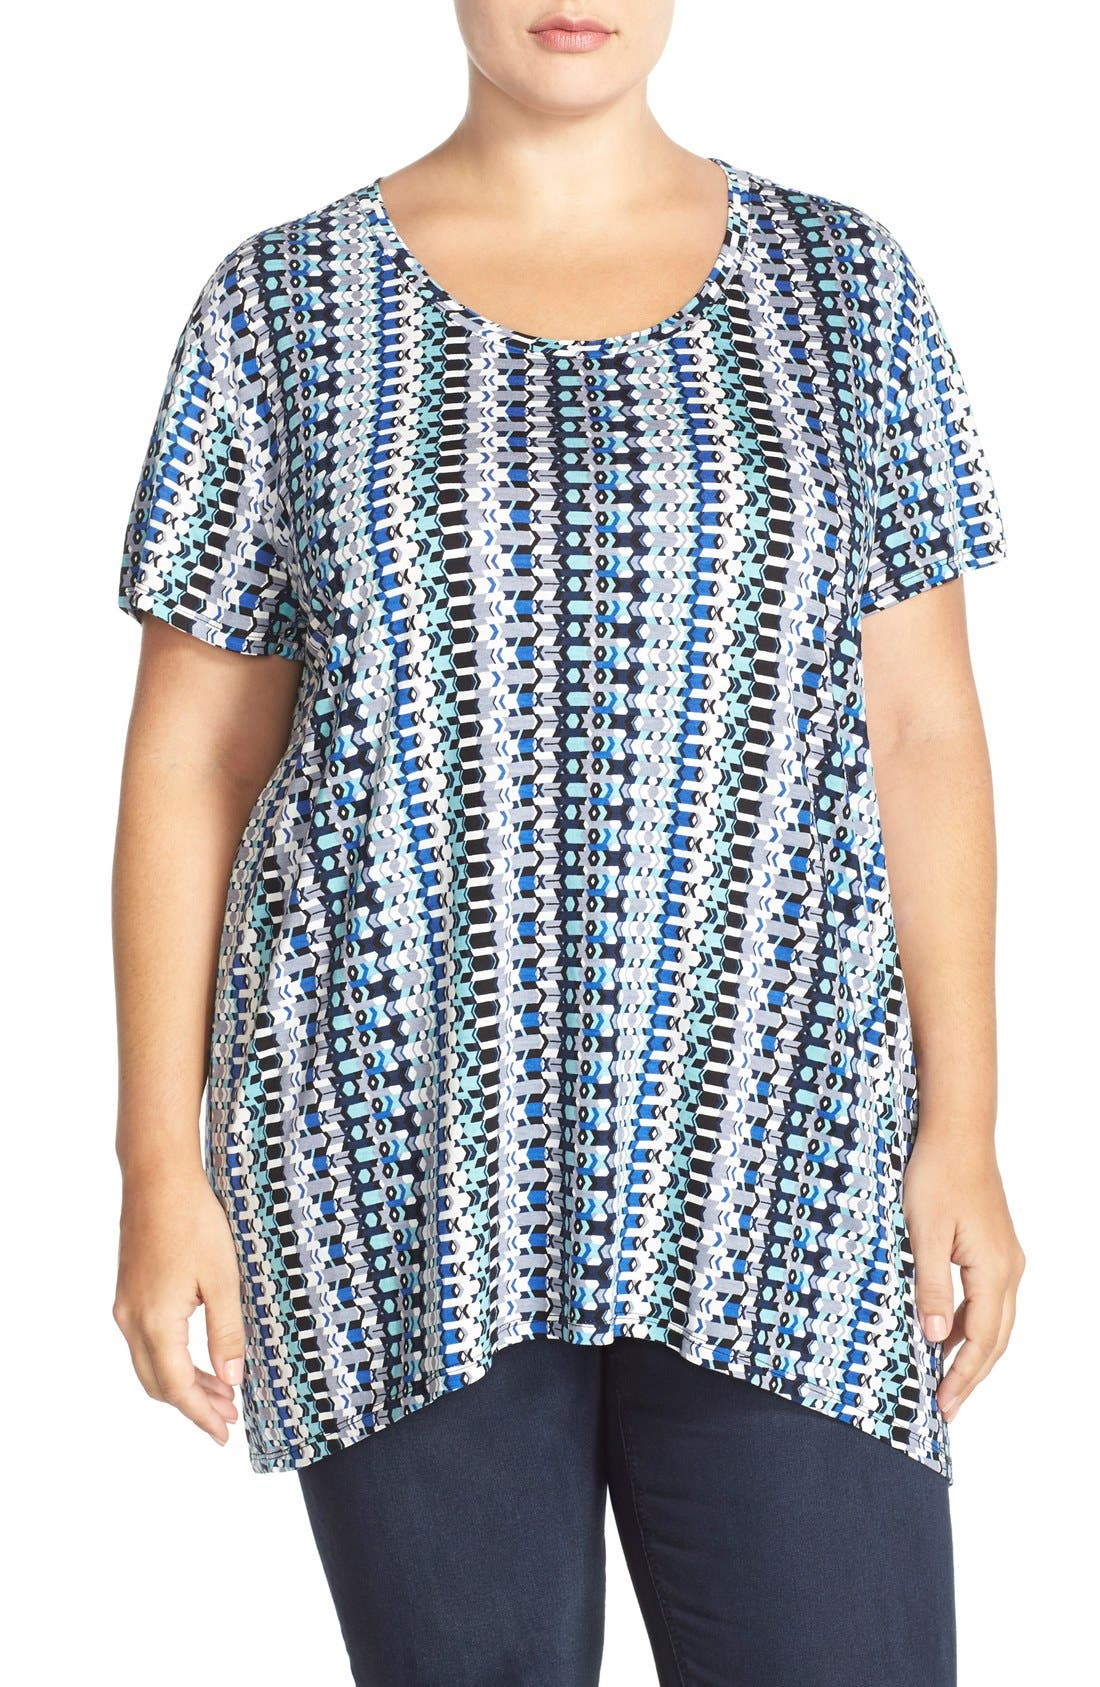 Alternate Image 1 Selected - Sejour Print High/Low Tee (Plus Size)